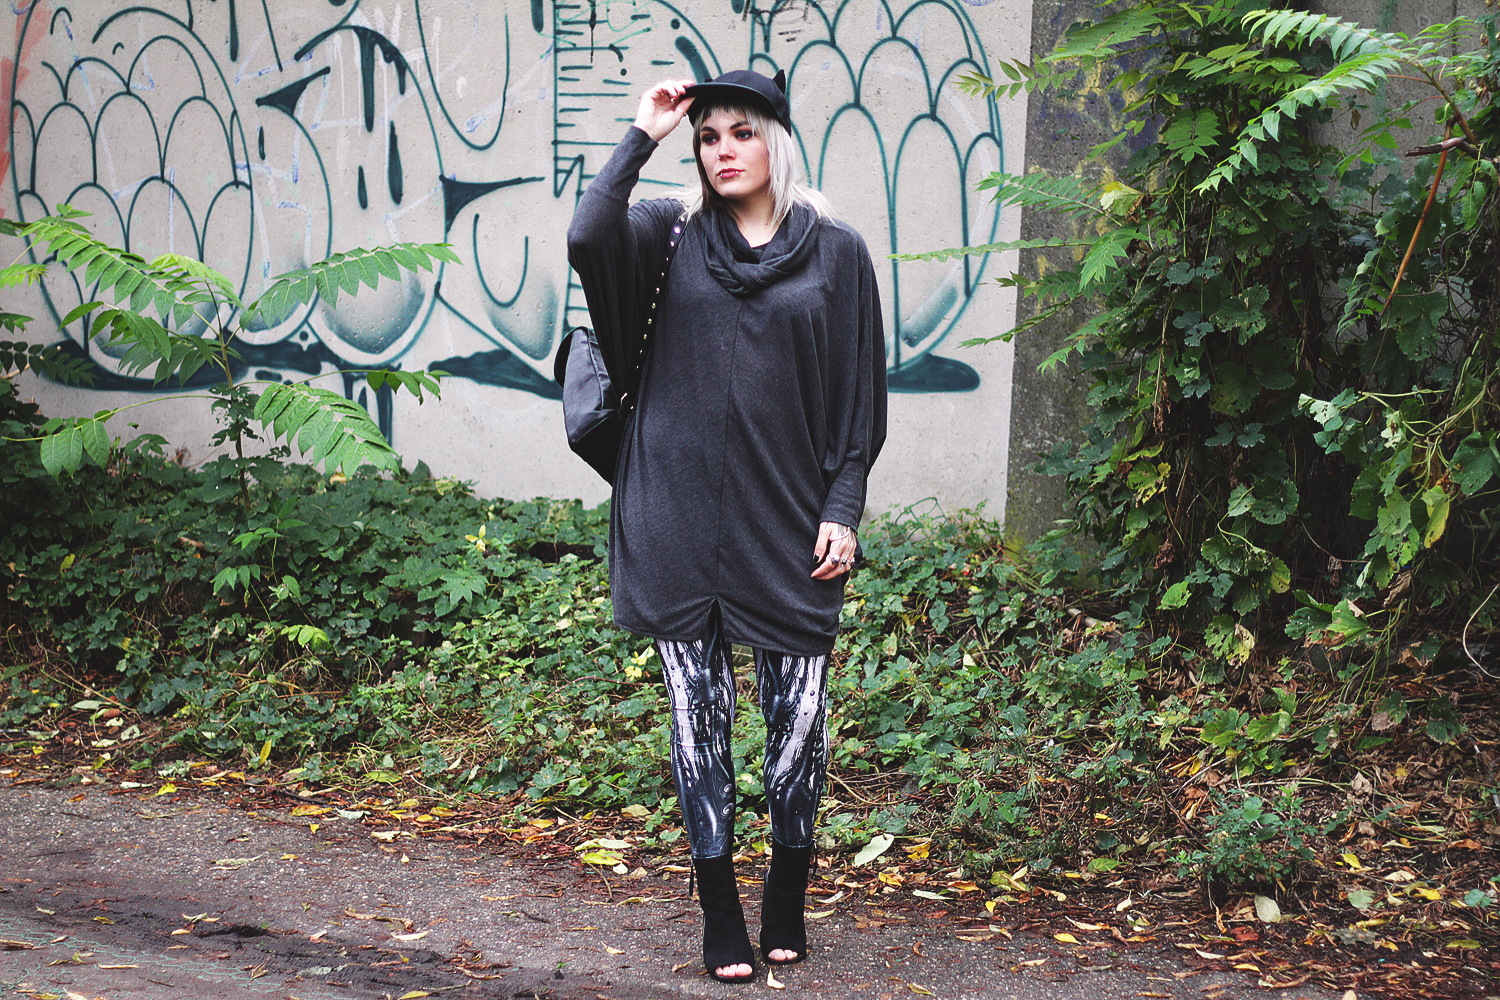 kawaii, berlin, berlin fashion, berlin streetstyle, berlin fashion blogger, blogger, fashion blogger, punk, grunge, punk fashion, grunge fashion, alternative, alternative fashion, alternative girl, altgirl, snakebites, girls with piercings, scenehair, mode, alternative mode, punk mode, grunge mode, split hair, splithair, girls with tattoos, tattoomädchen, tattoomodel, berlin mode, alternative mode, punkmädchen, punk girl, miau, katze, cat hat, cap, black milk, black milk clothing, cyber, robo, rooter, robot, steam punk, asos, heels, blockabsatz, peeptoes, mnml, strick, pulli, oversized, disturbia, dollskill, usa, metal backpack, rucksack